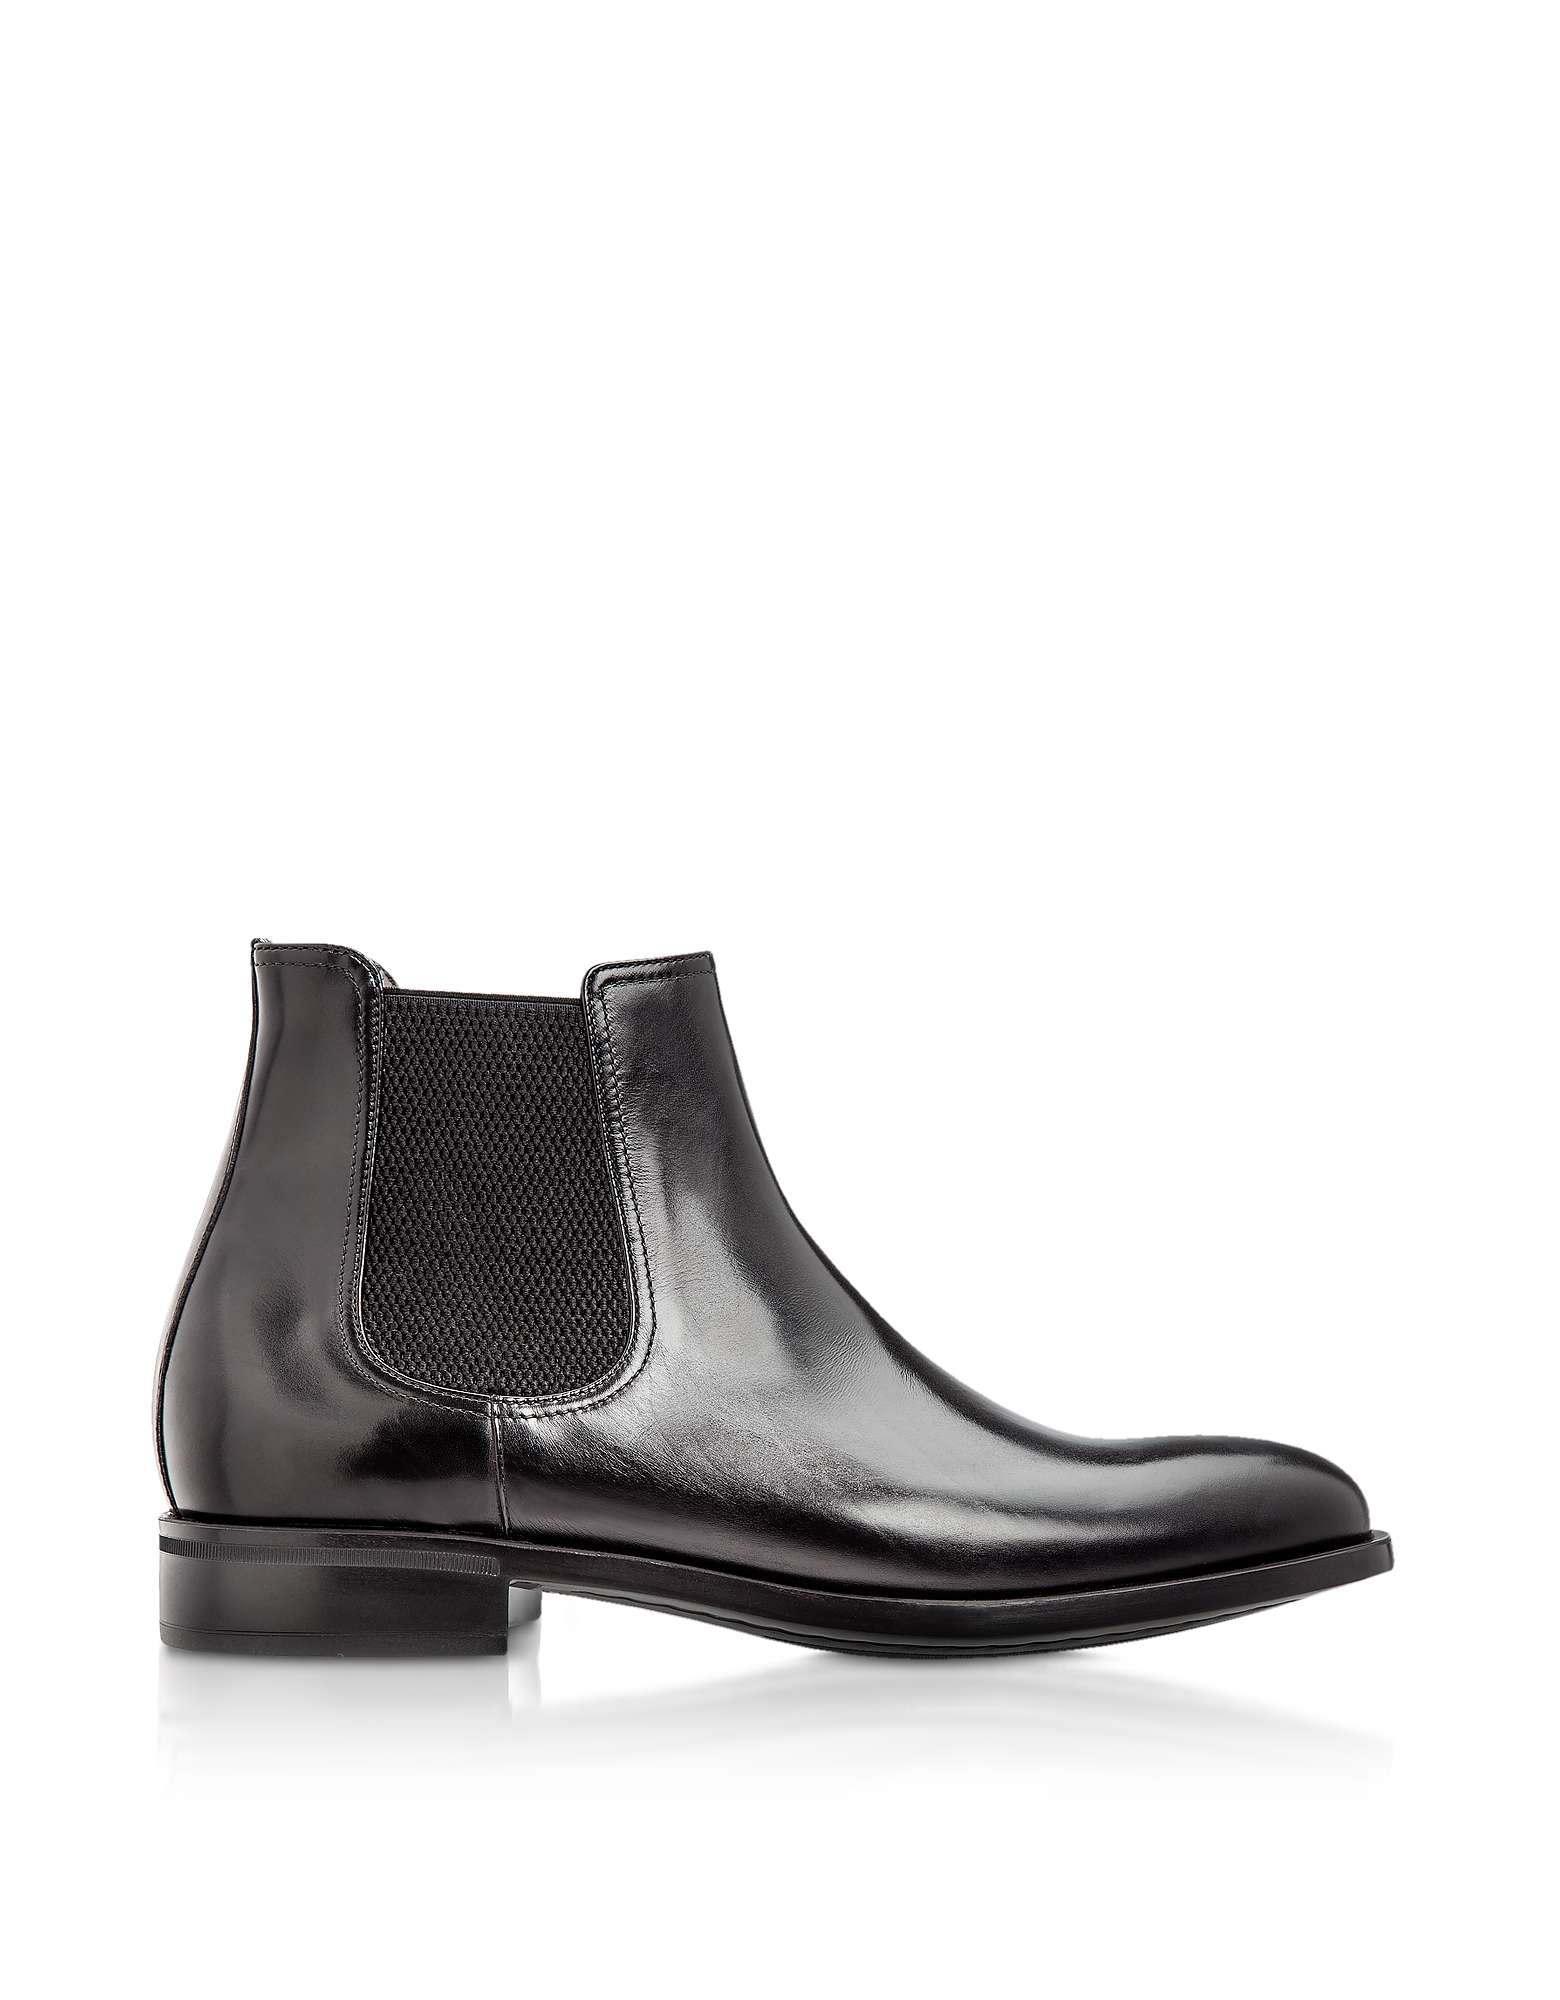 Moreschi Shoes, Chelsea Black Calfskin Boots